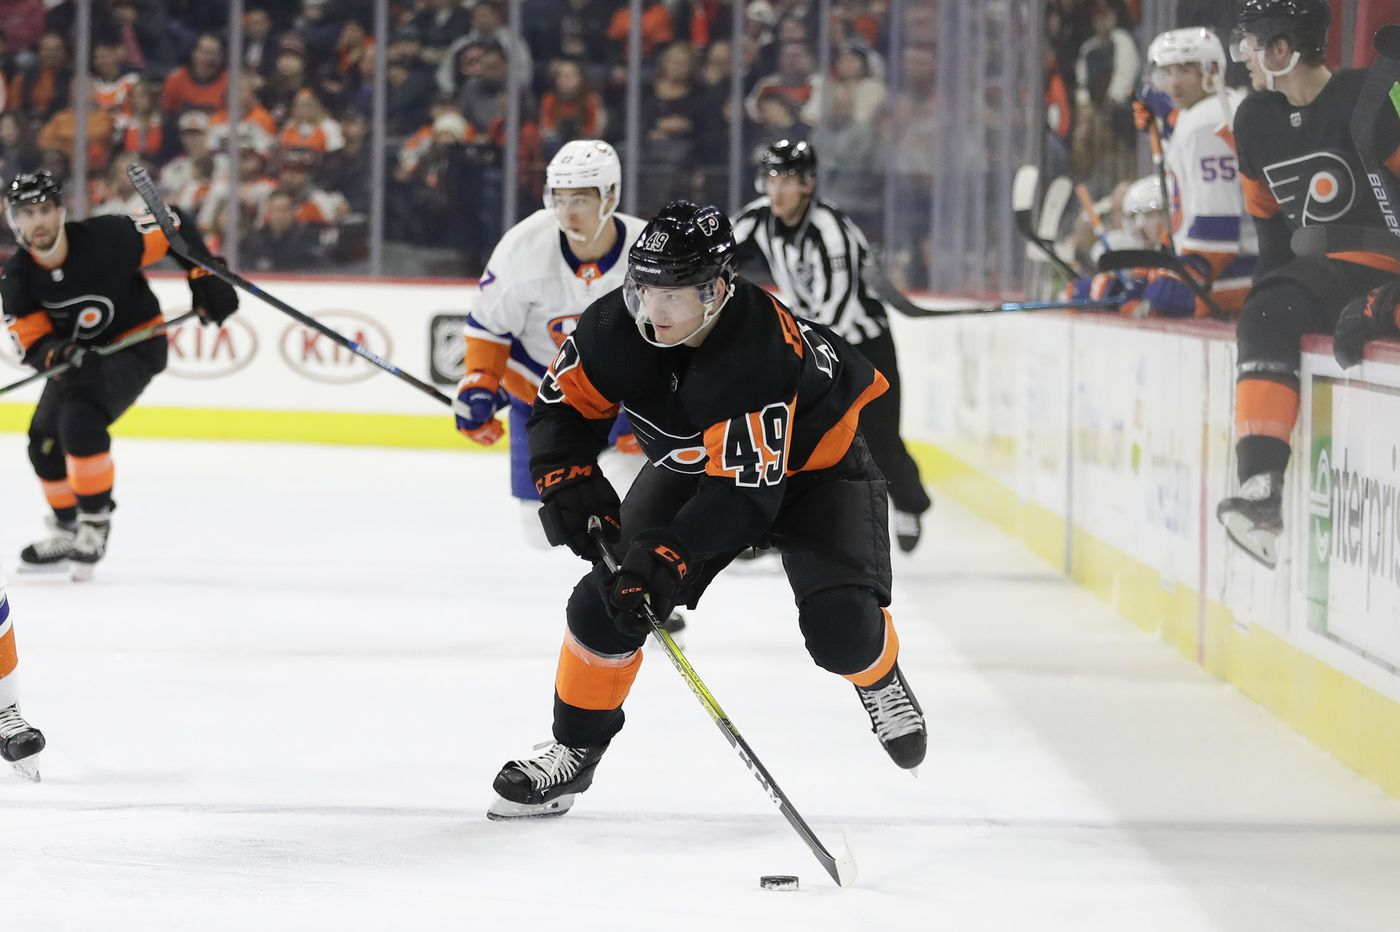 Can Flyers' young players, including Joel Farabee, take a step forward in season's second half? | Sam Carchidi